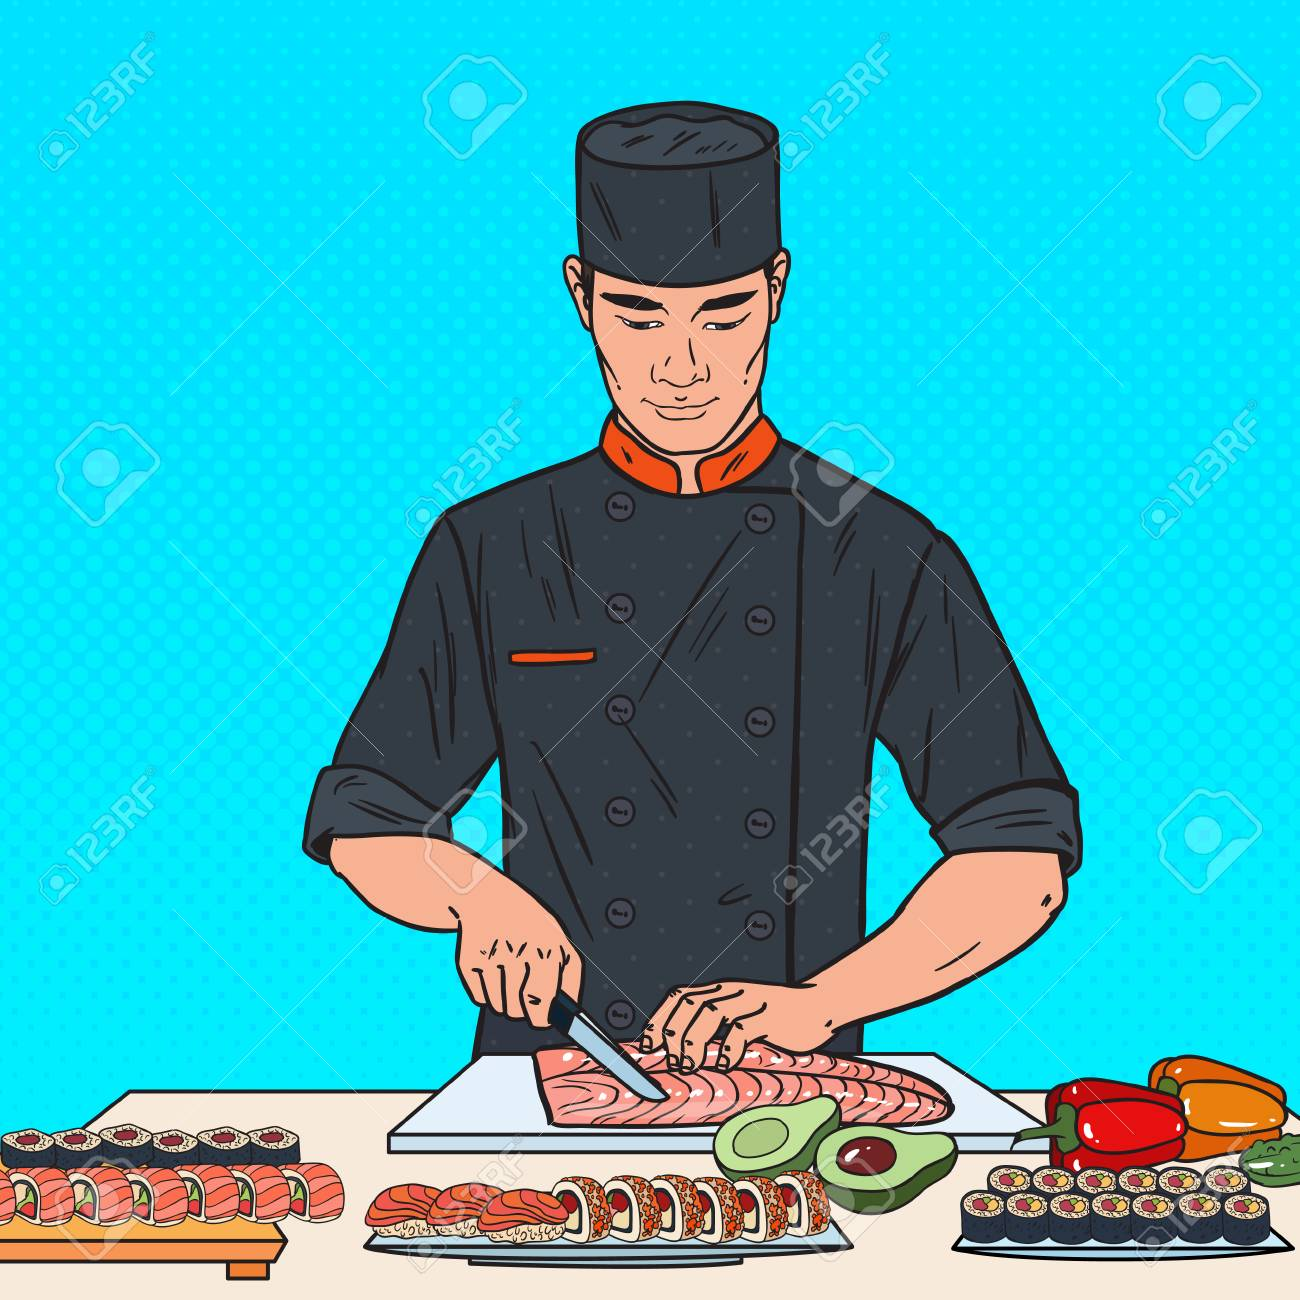 Pop Art Chef Preparing Sushi In Japanese Restaurant Vector Illustration Royalty Free Cliparts Vectors And Stock Illustration Image 98957070